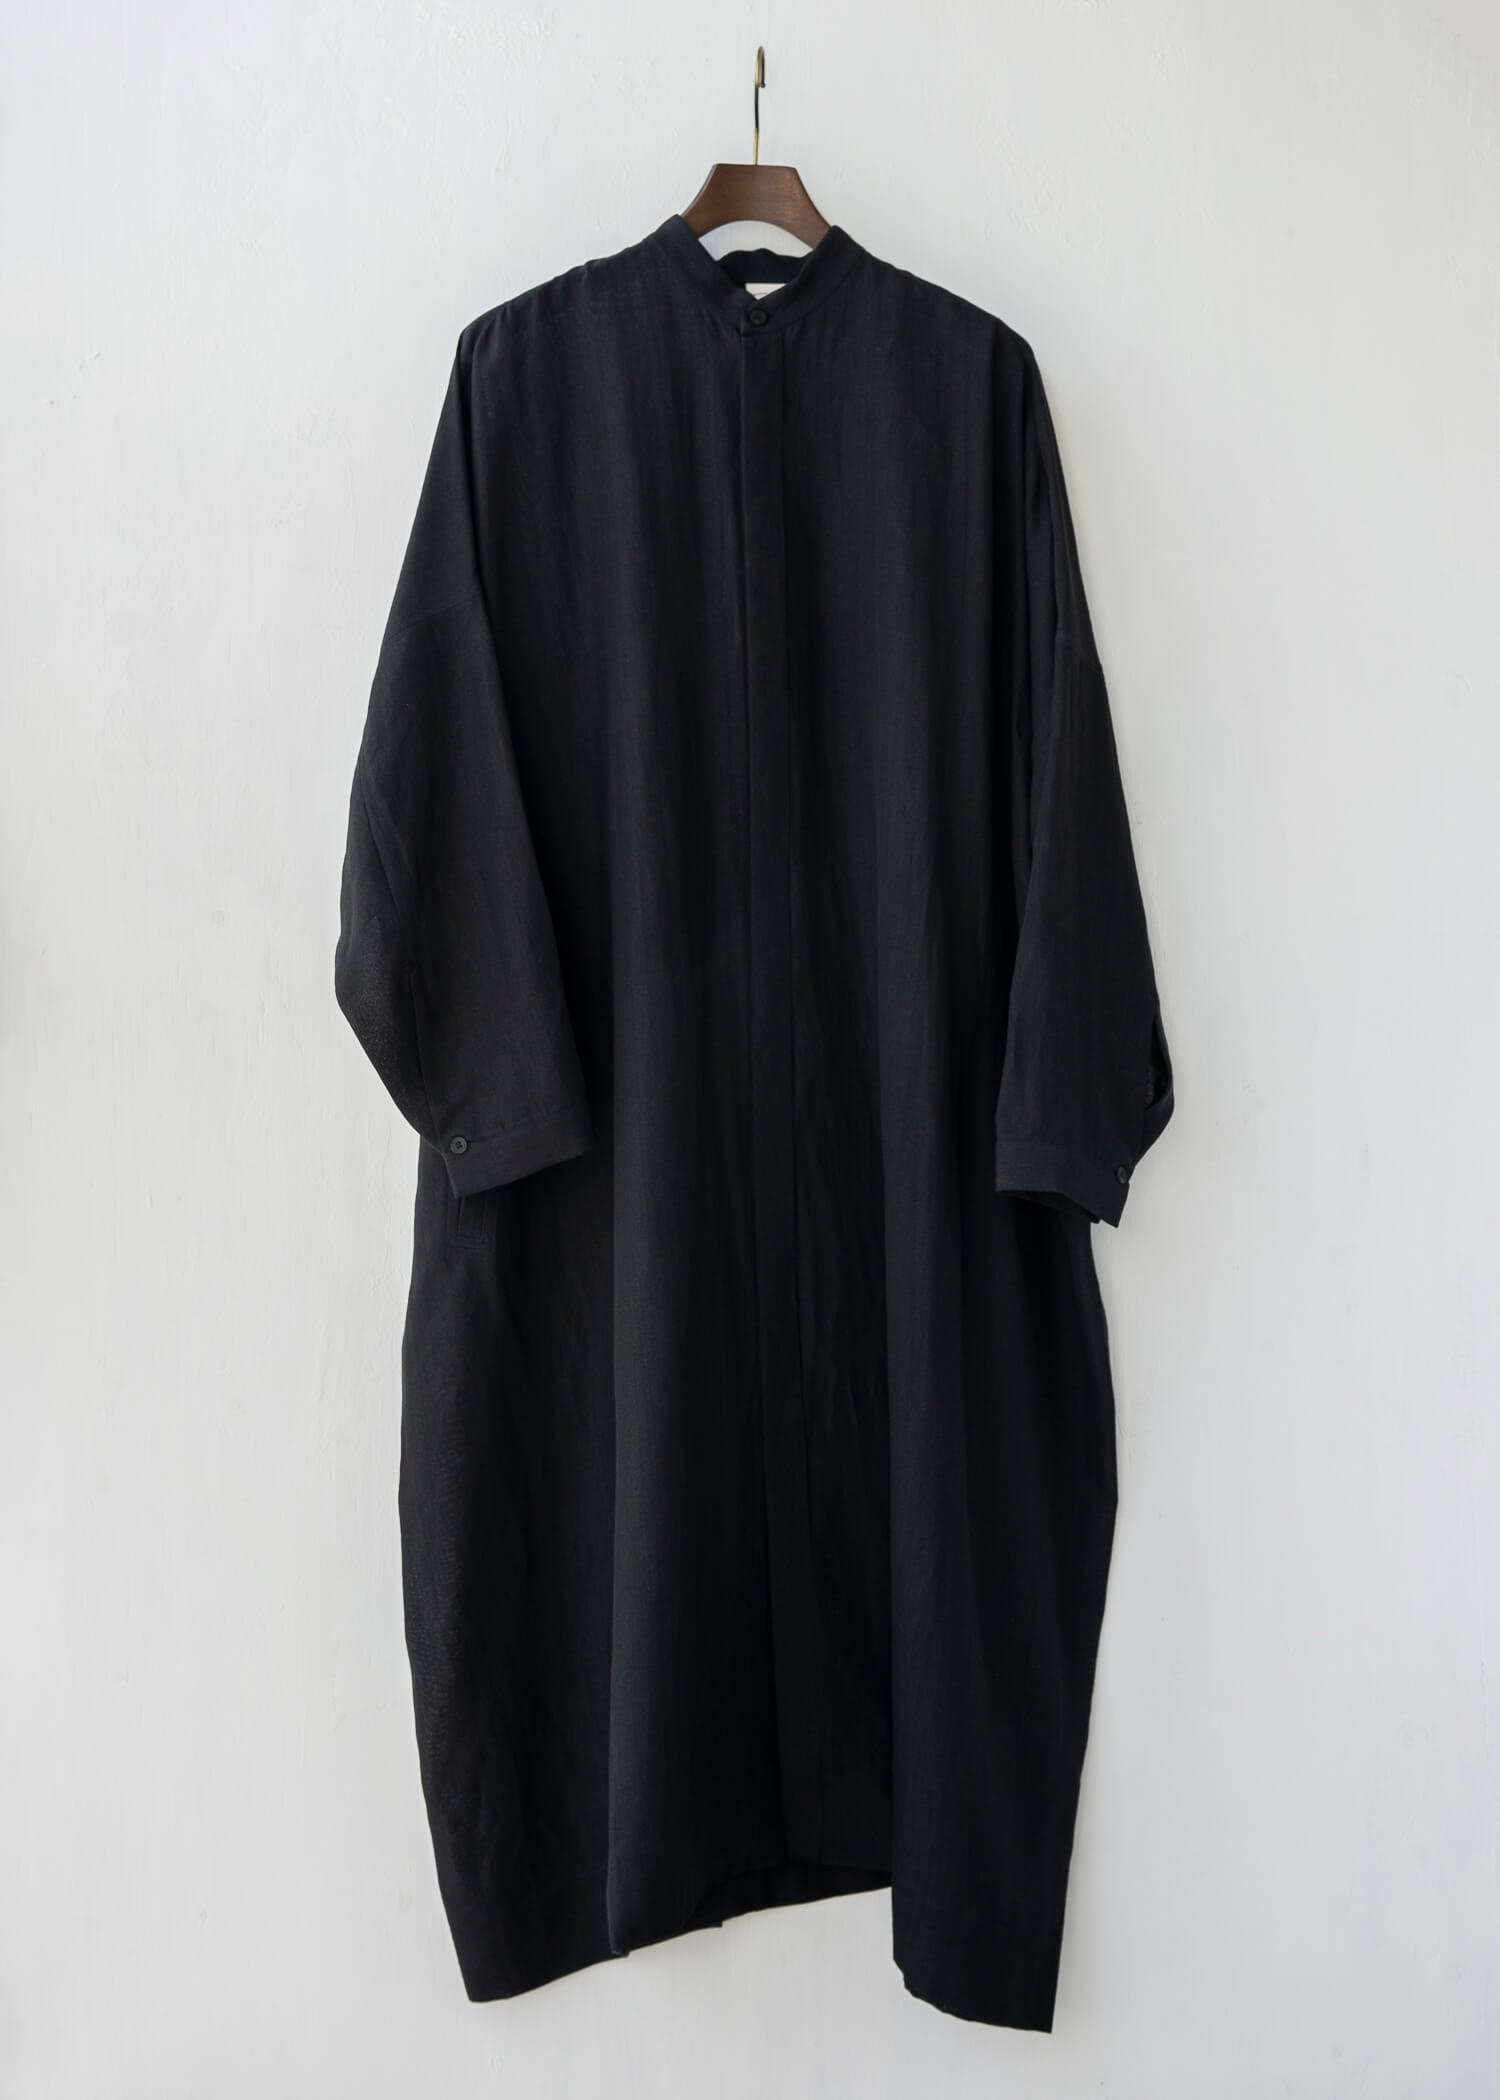 JAN-JAN VAN ESSCHE / SHIRT#78 OVERSIZED LONG SHIRT BLACK FINE MESH